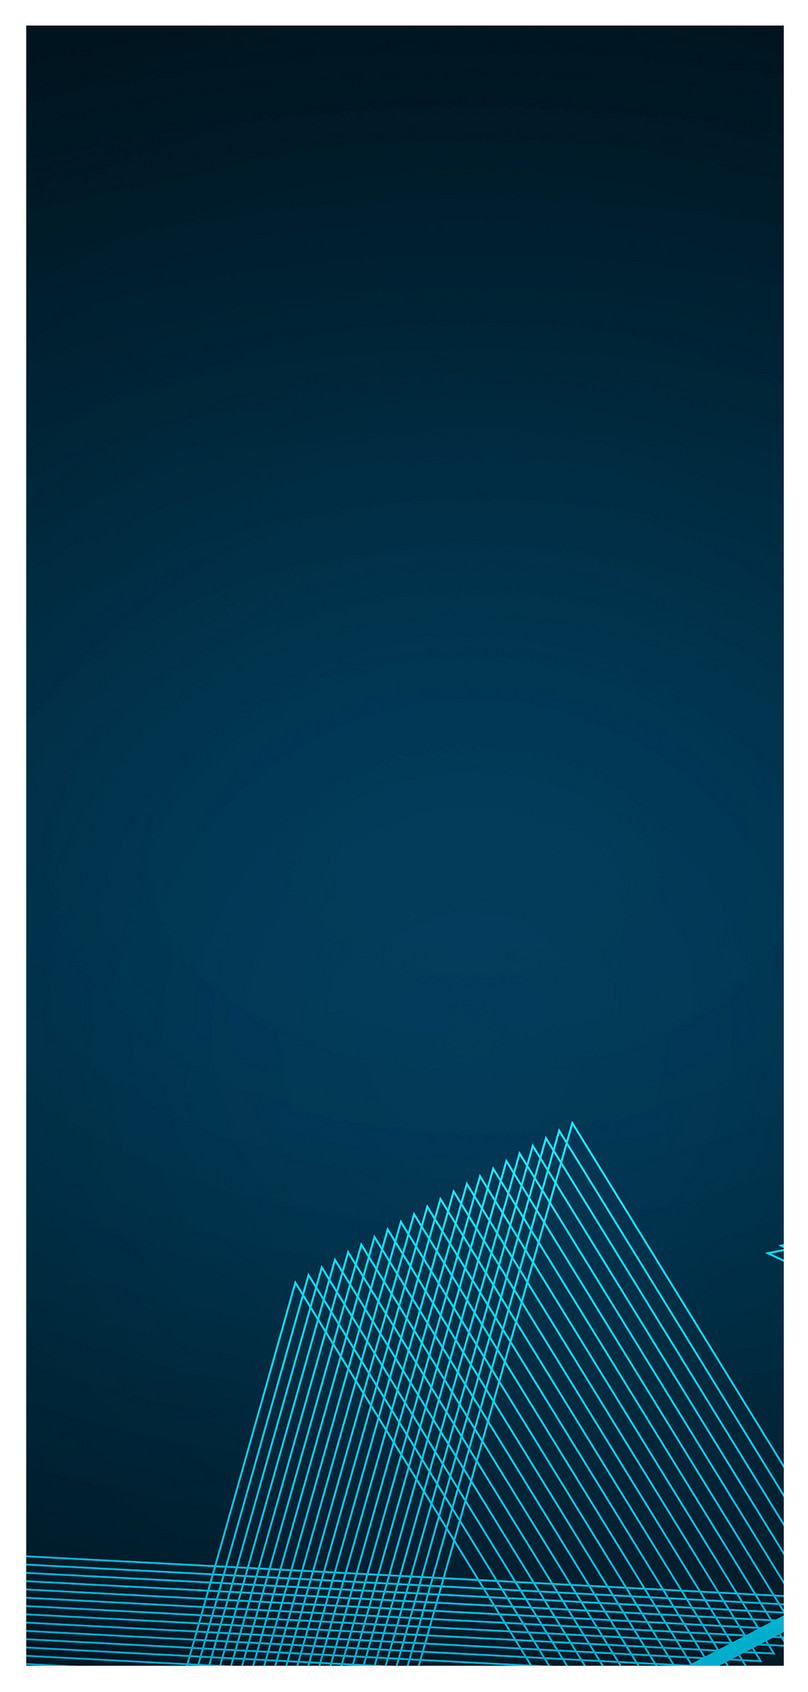 abstract geometric lines mobile phone wallpaper backgrounds images 808x1692